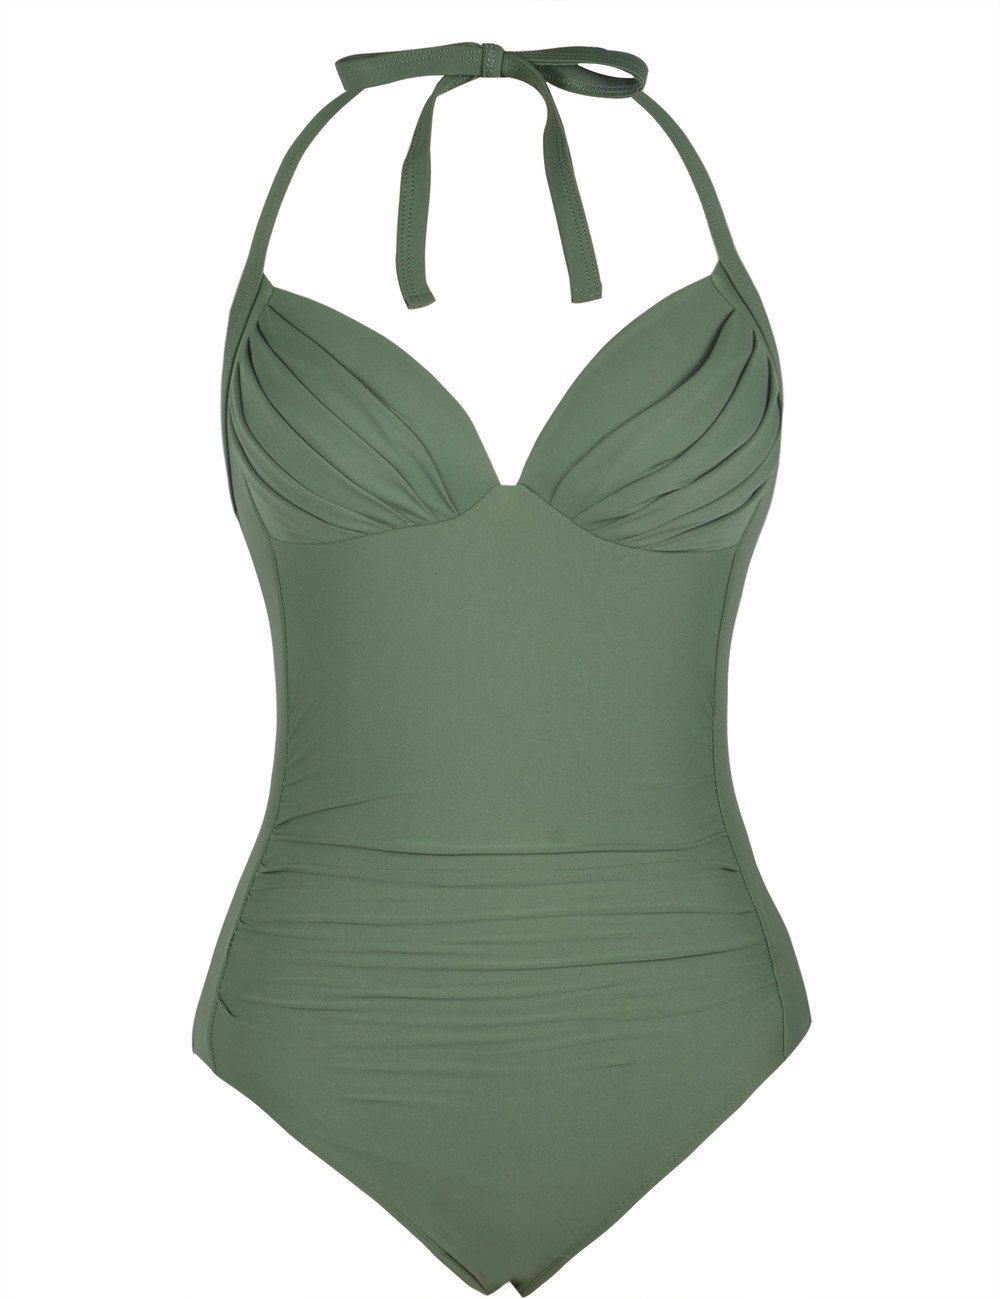 Firpearl Women's One Piece High Waisted Halter V Neck Plunge Ruched Swimsuit Army Green 12